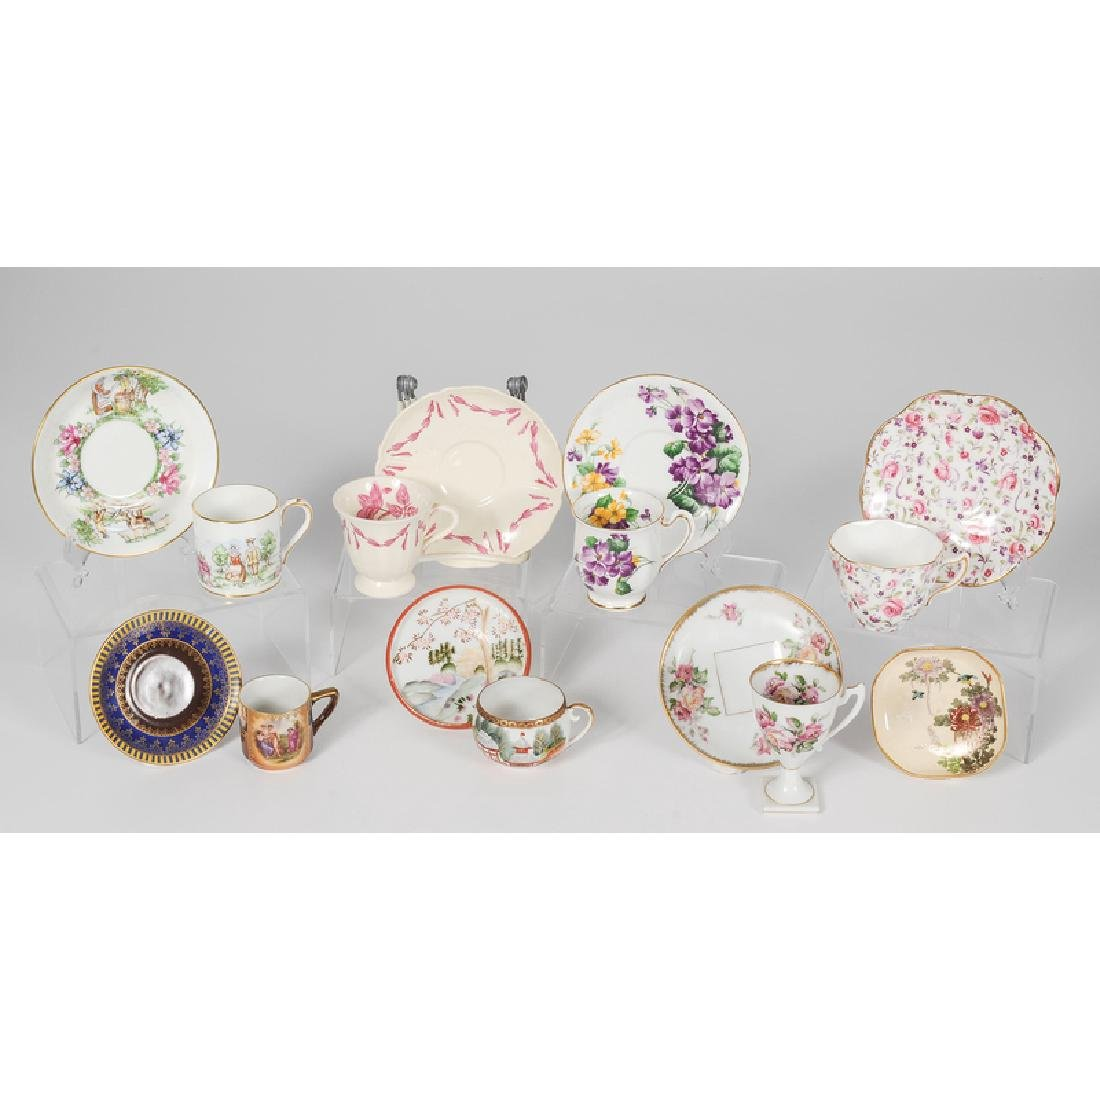 Assorted Collection of Teacups and Saucers - 3